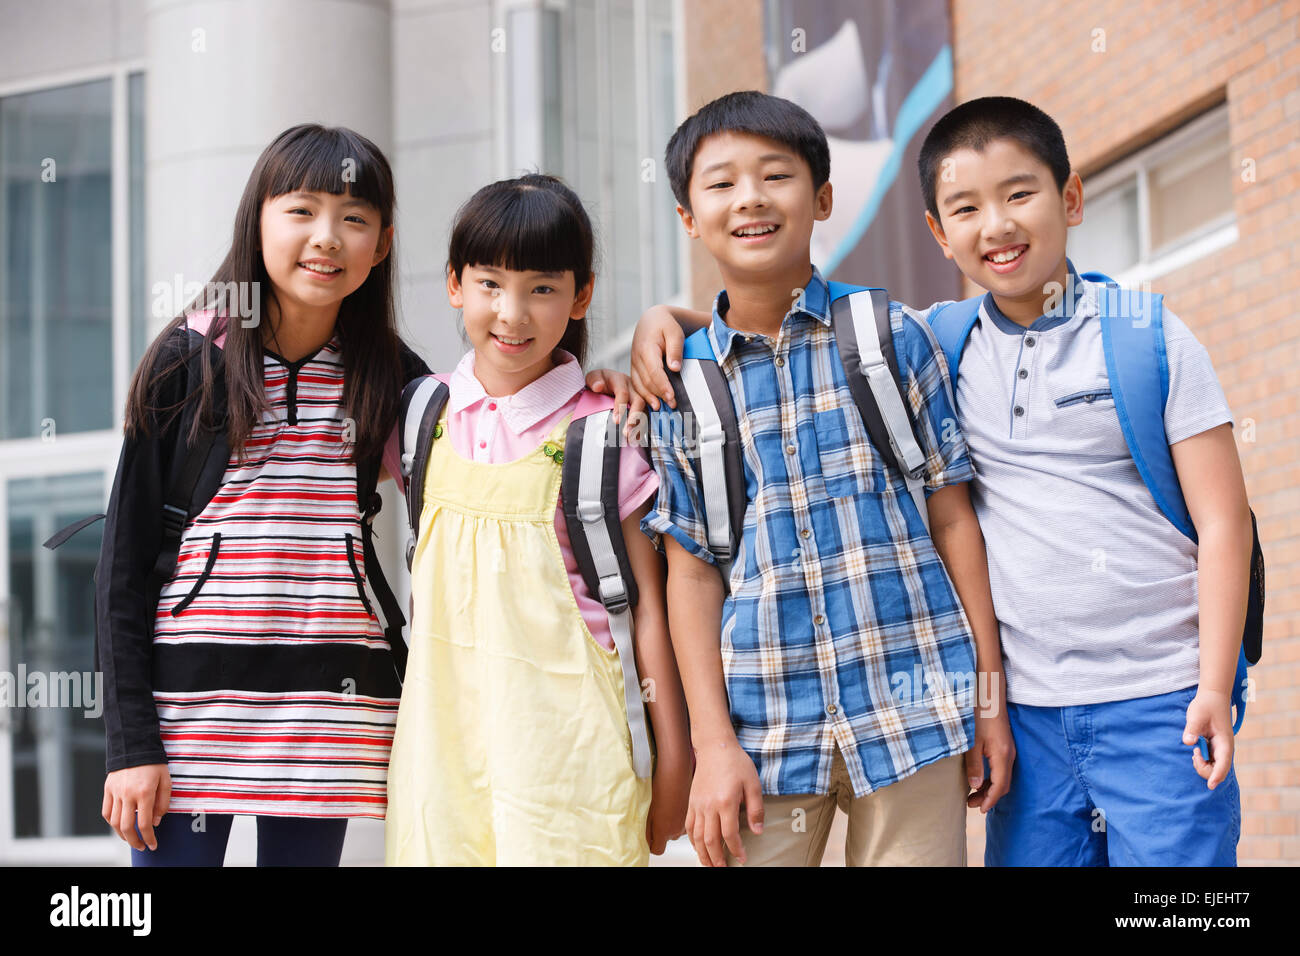 The cute pupil at school arm around the shoulder - Stock Image